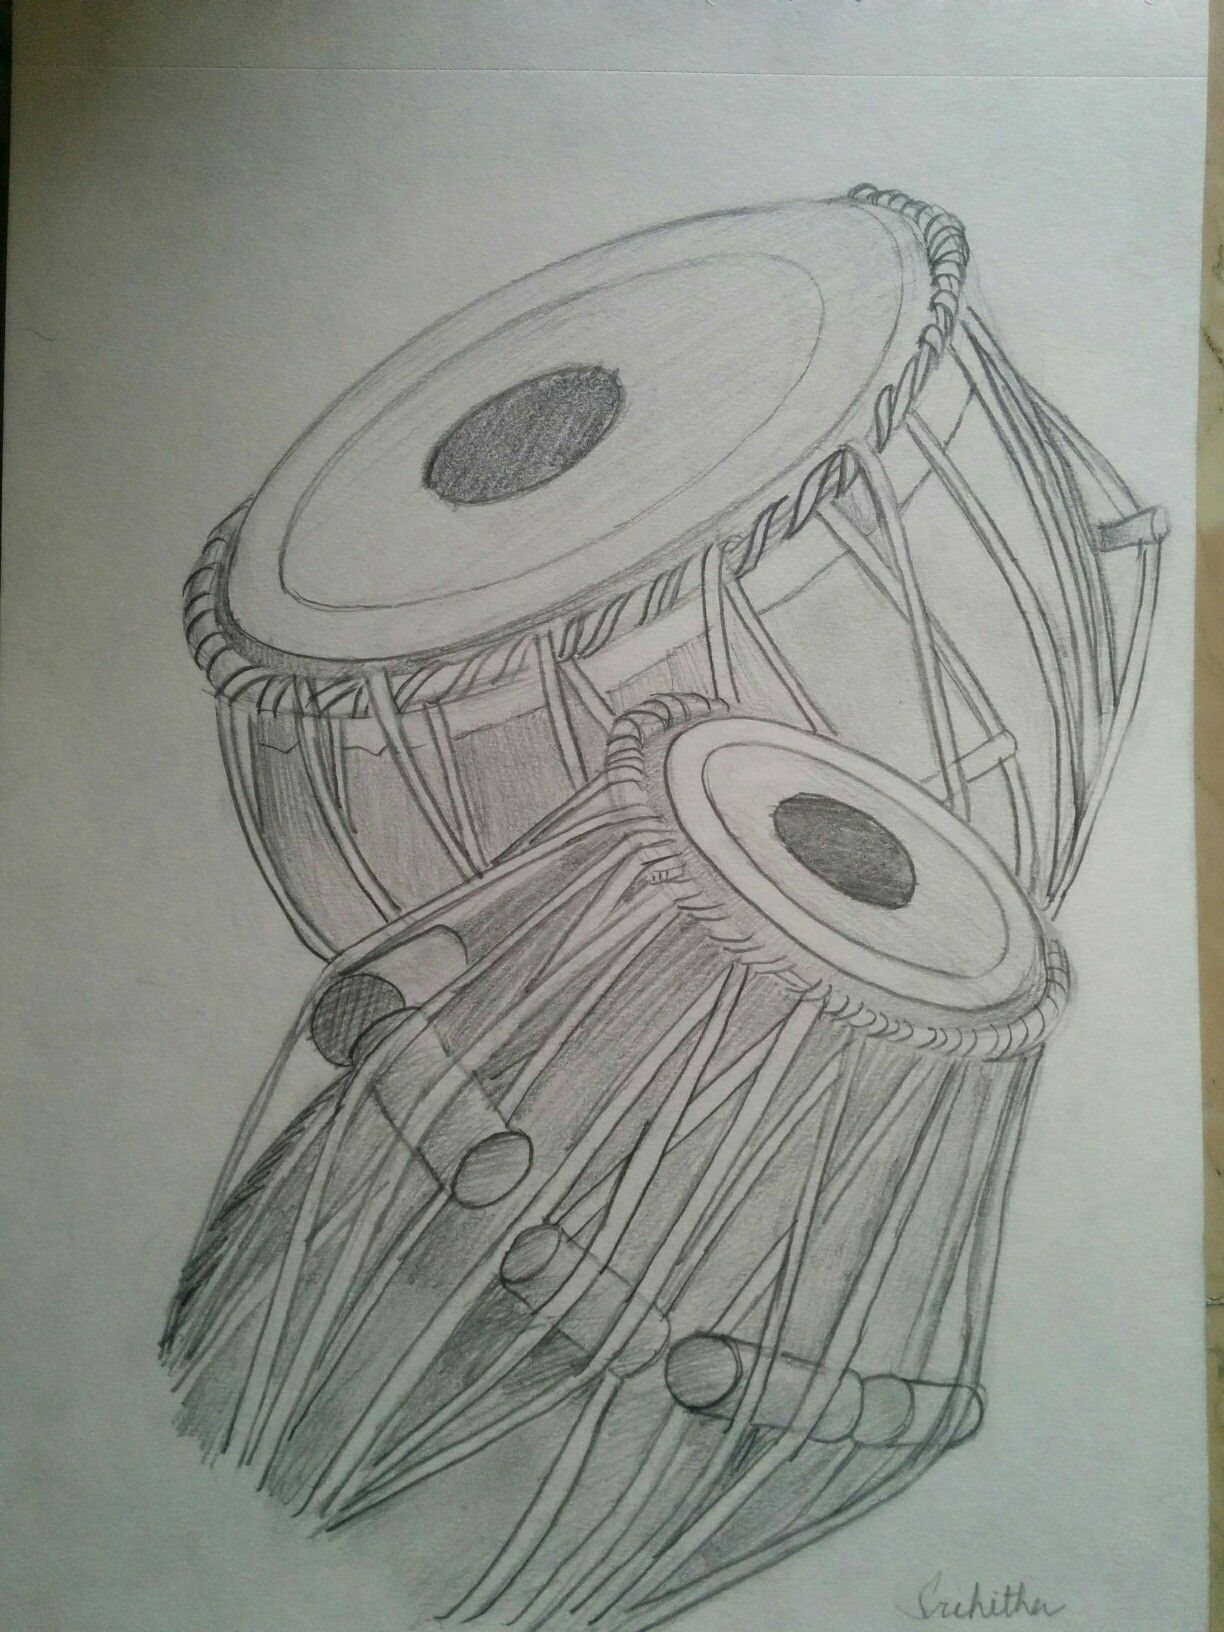 Tabla pencil shading